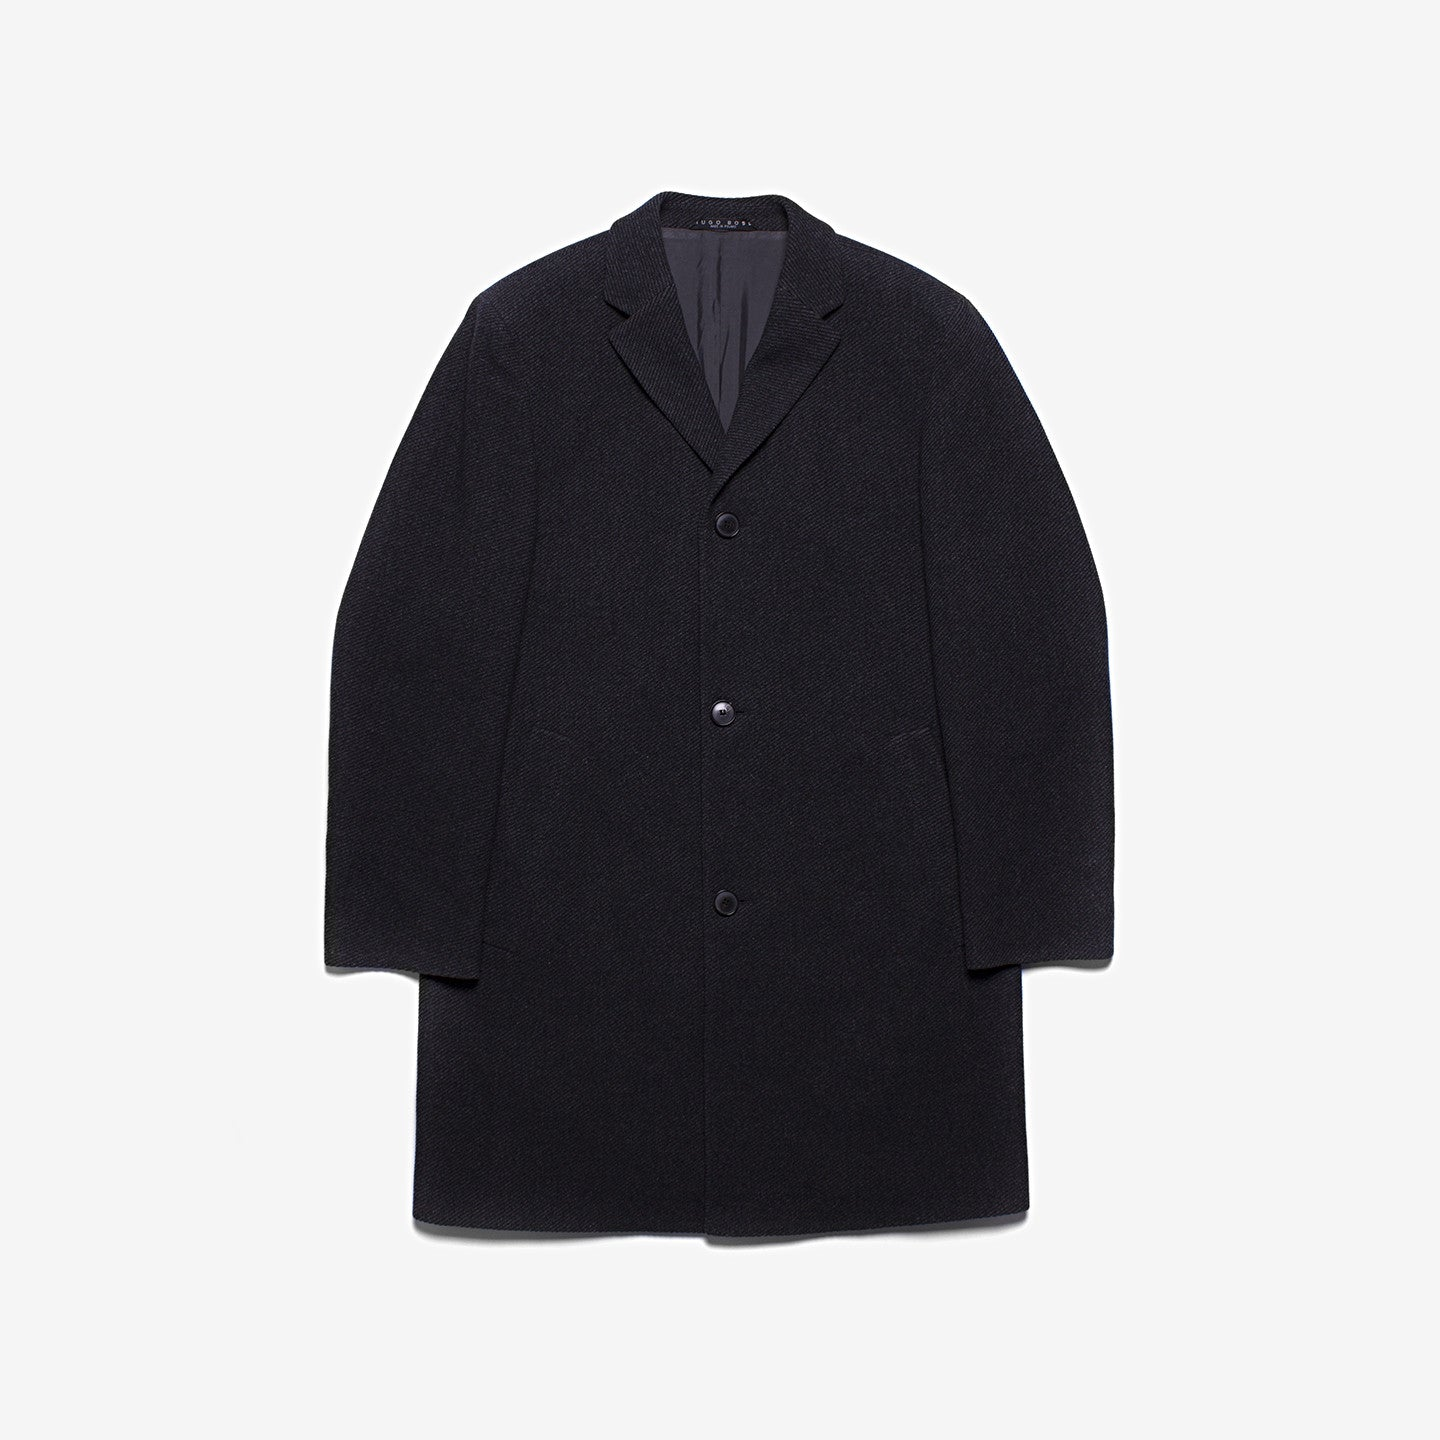 Hugo Boss / Virgin Wool Coat